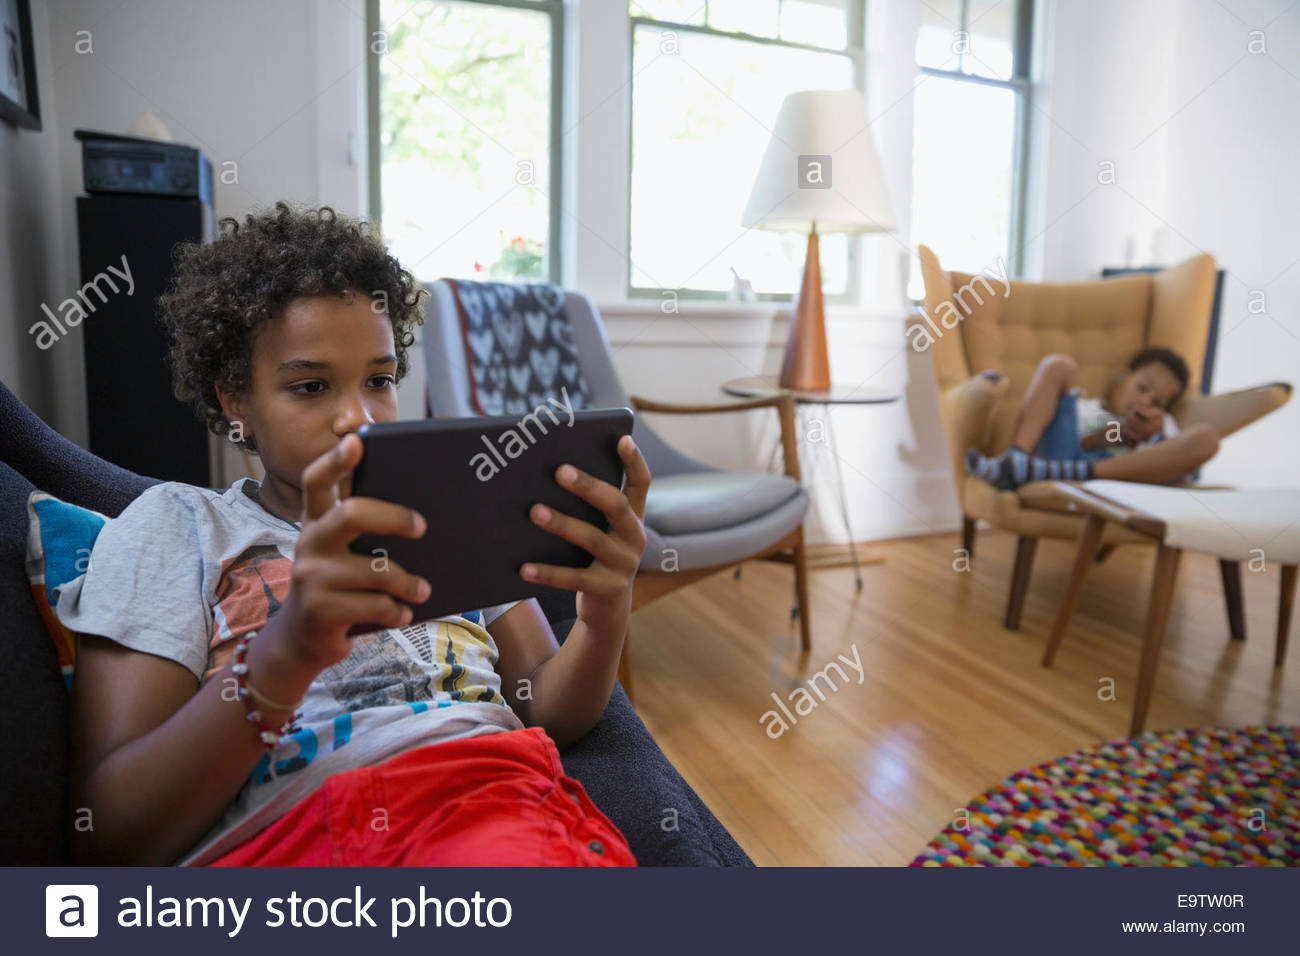 Brothers using technology in living room - Stock Image